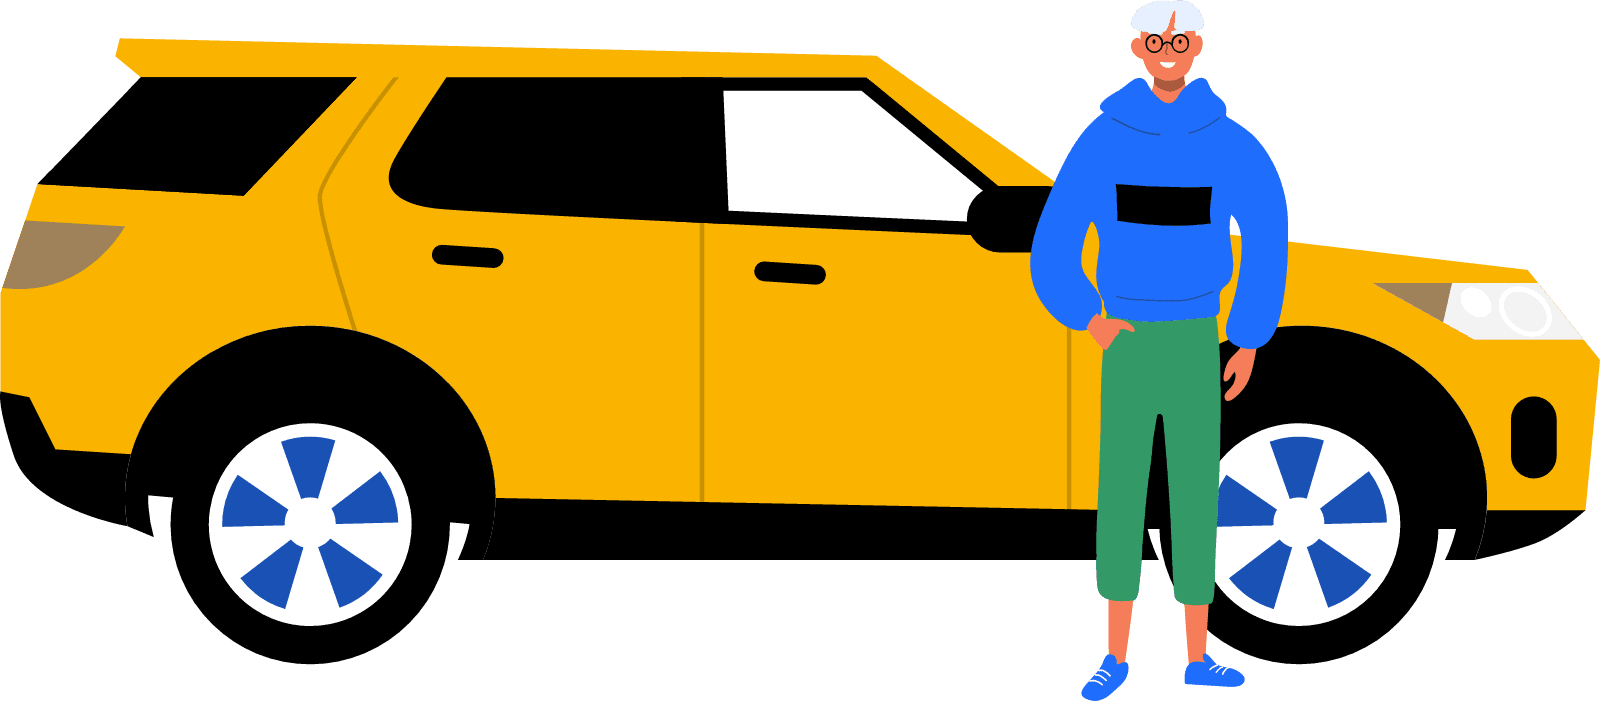 Average Cost Of Car Insurance April 2021 Valuepenguin